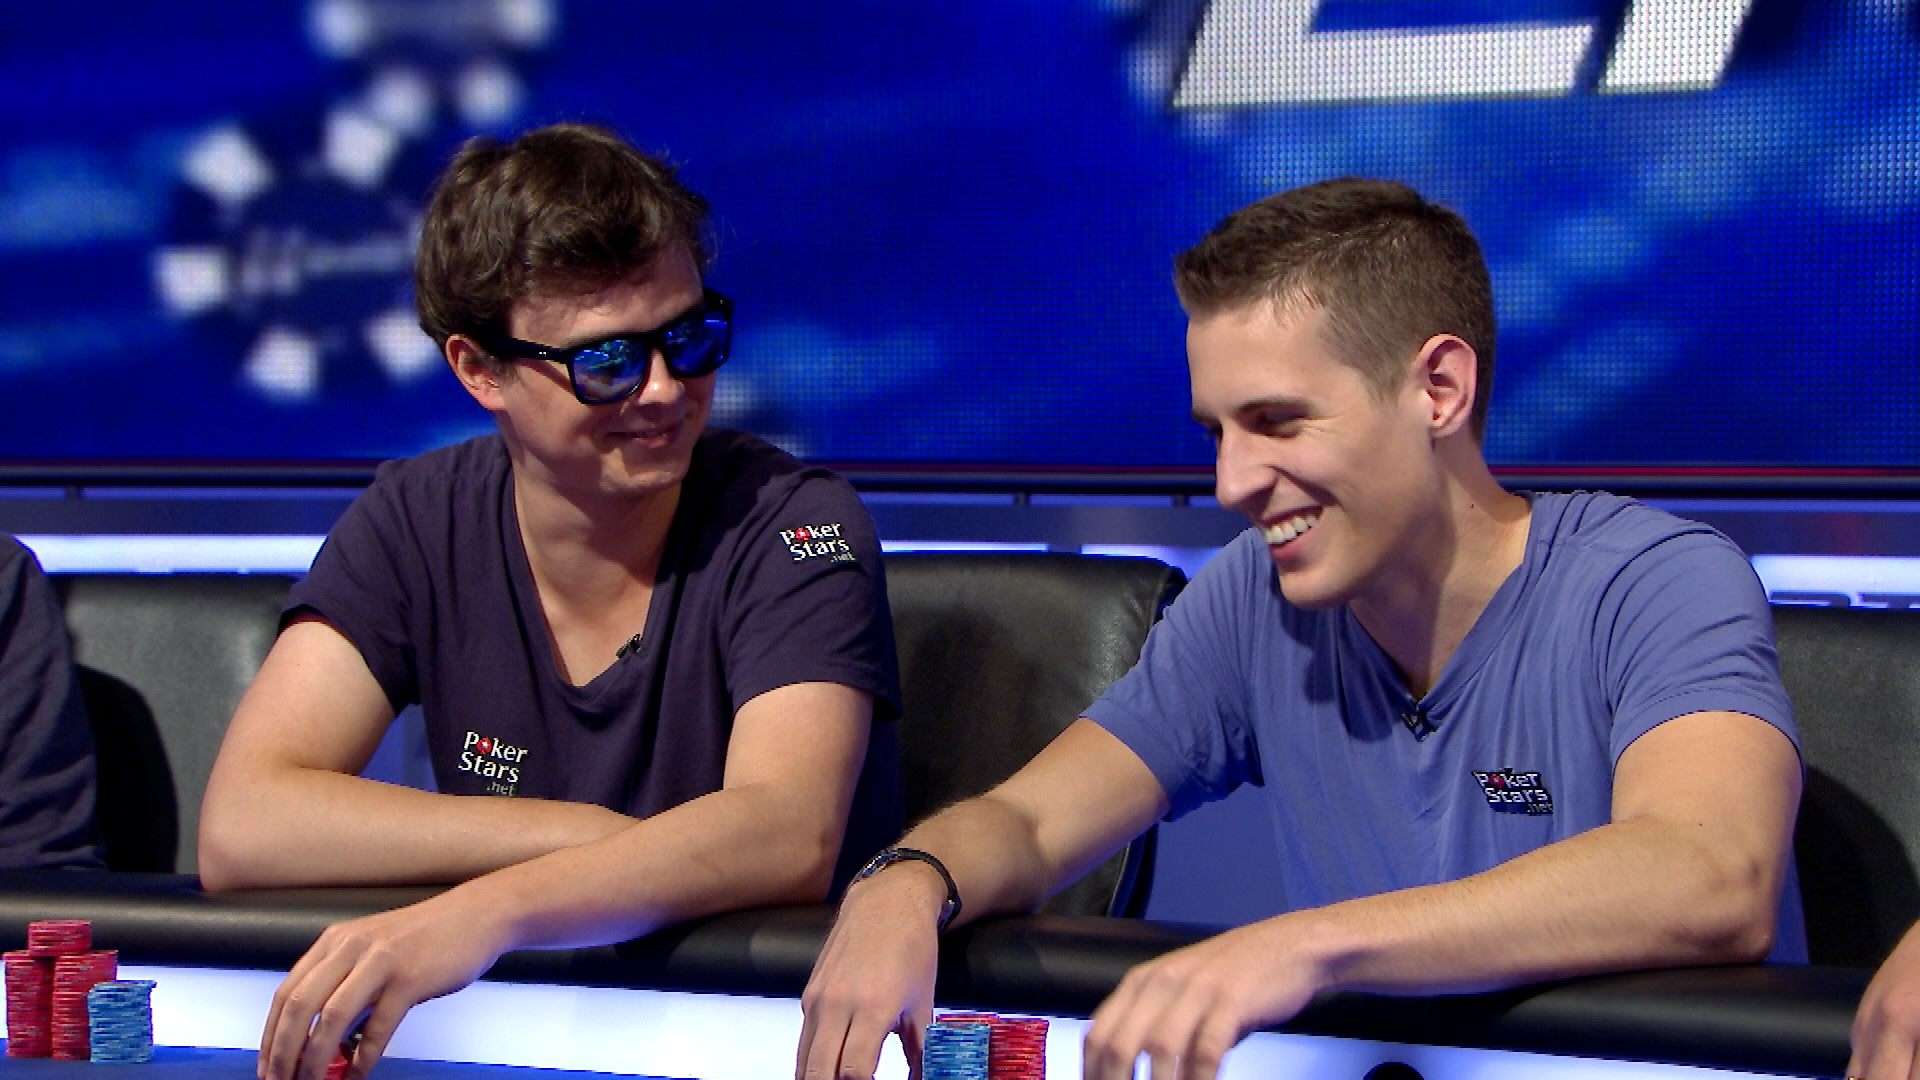 EPT 11 Barcelona - Main Event, Episode 3